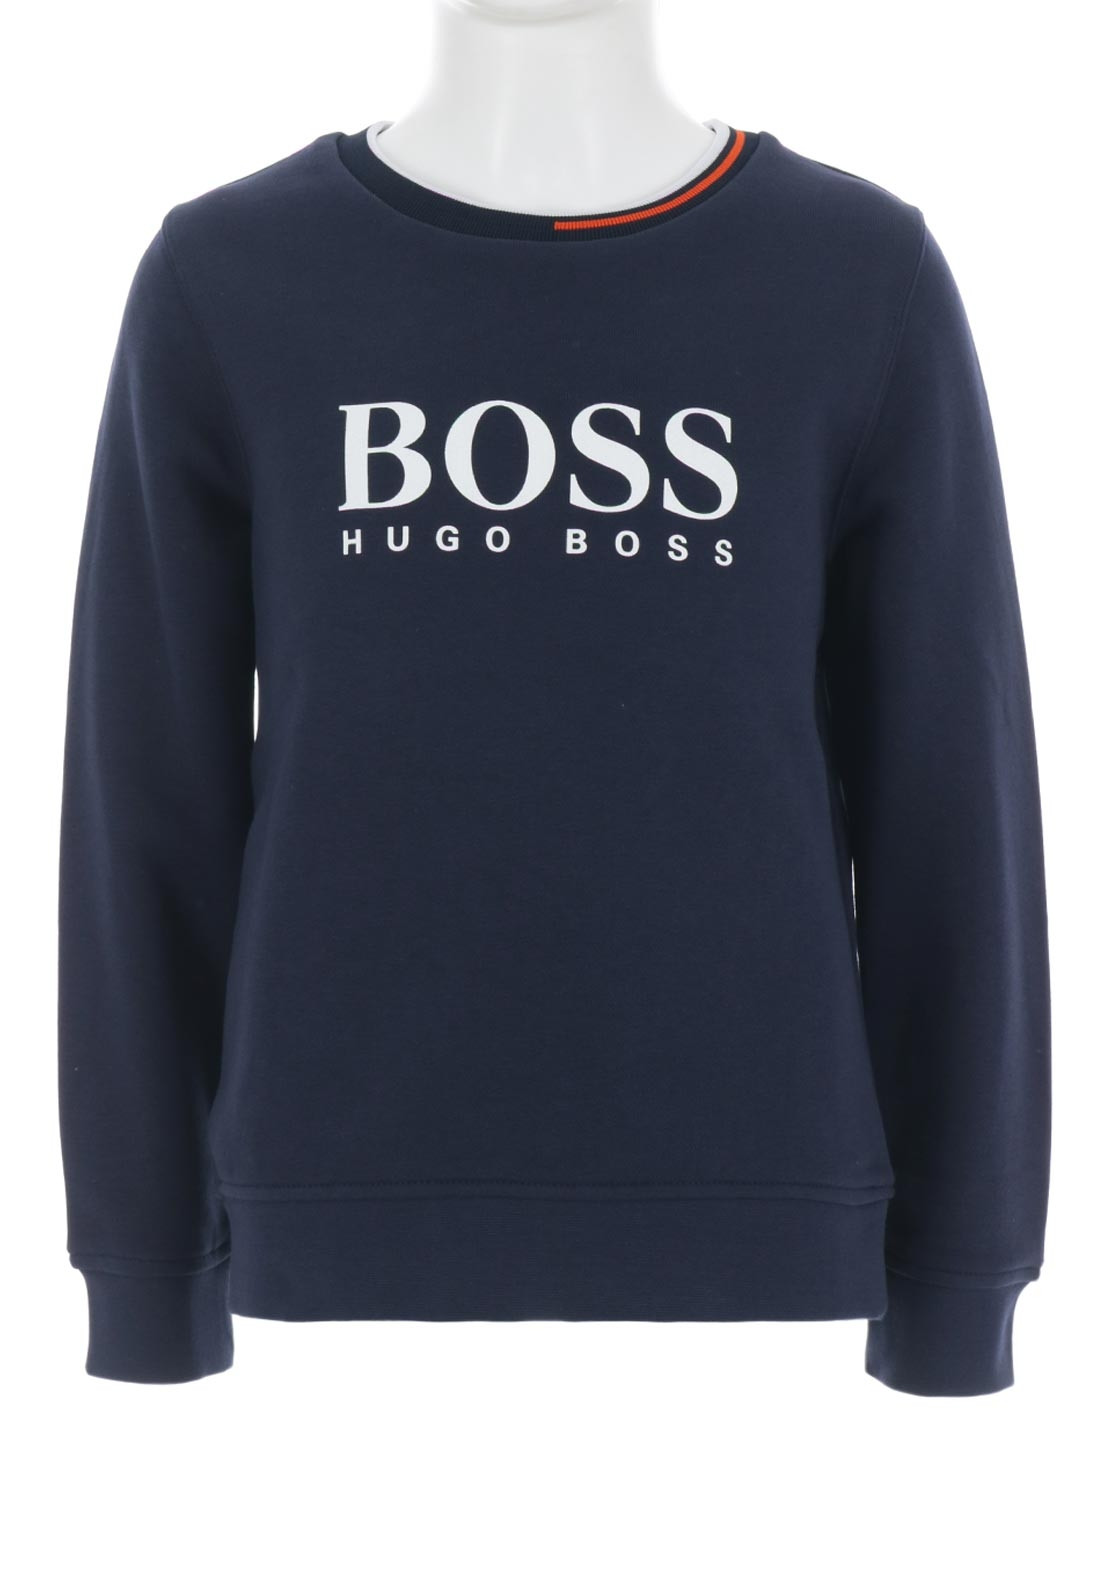 387b6c5da5 Hugo Boss Boys Logo Sweatshirt, Navy | McElhinneys